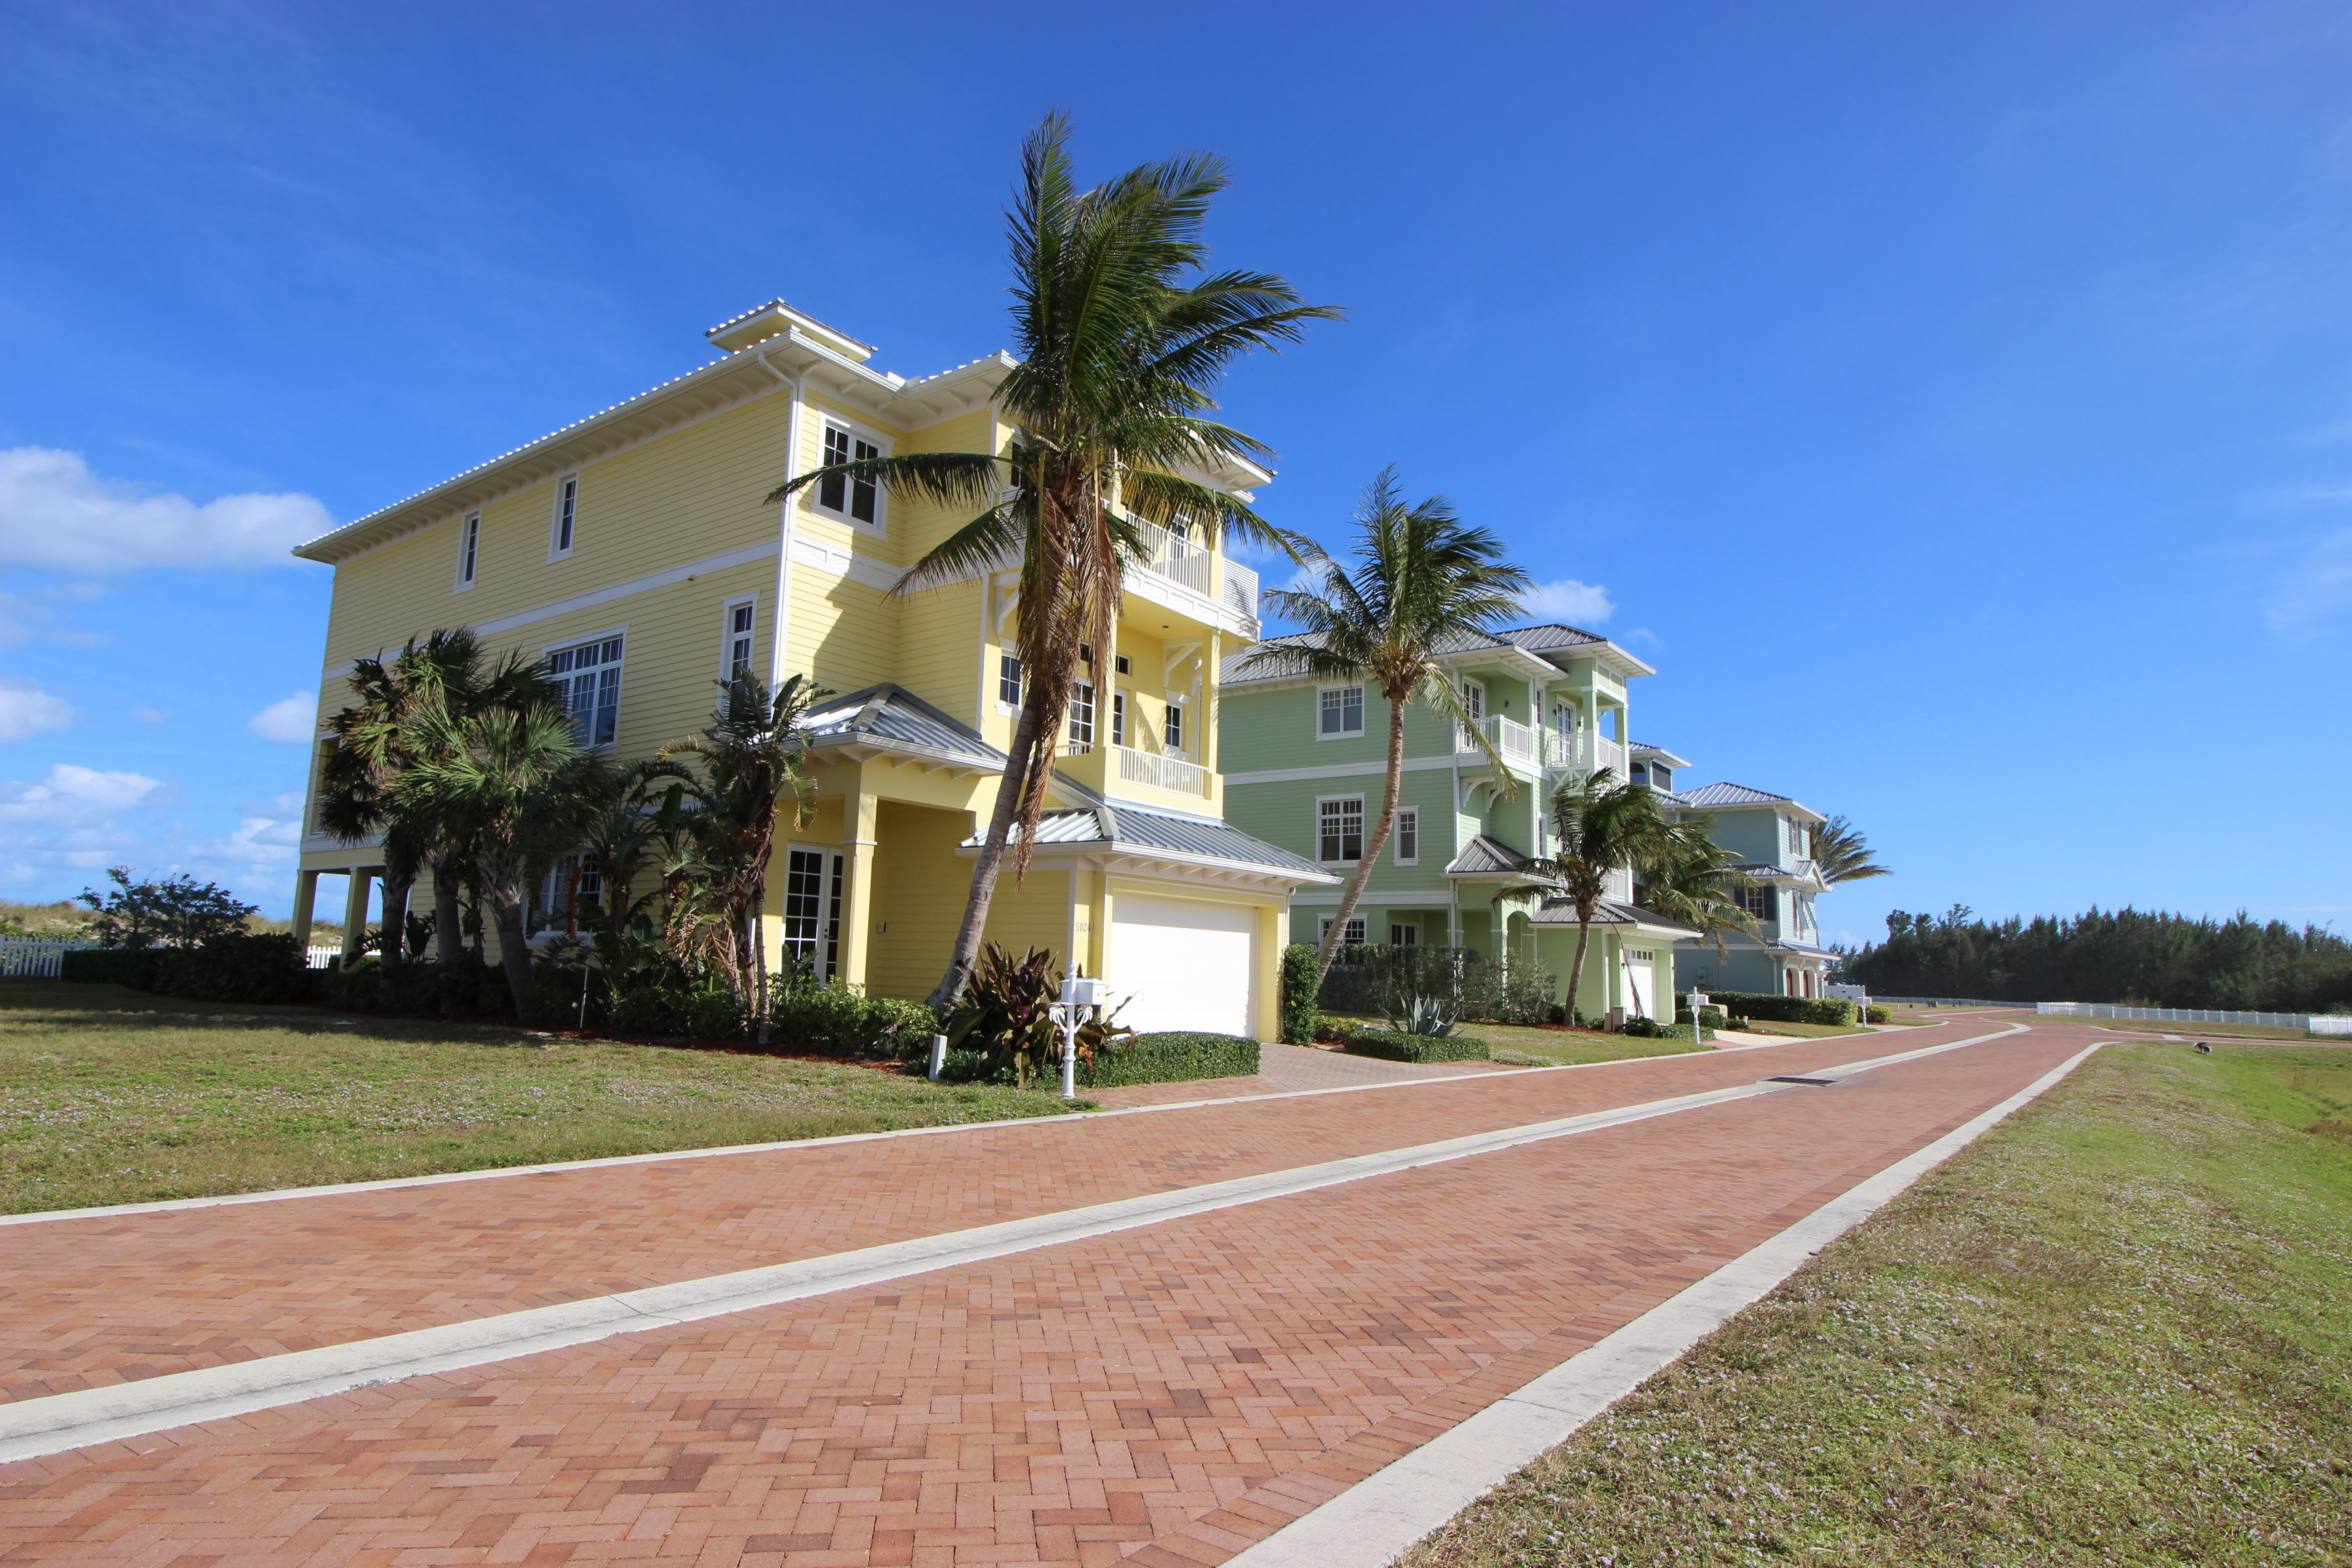 Watersong - Hutchinson Island - Oceanside Realty Partners